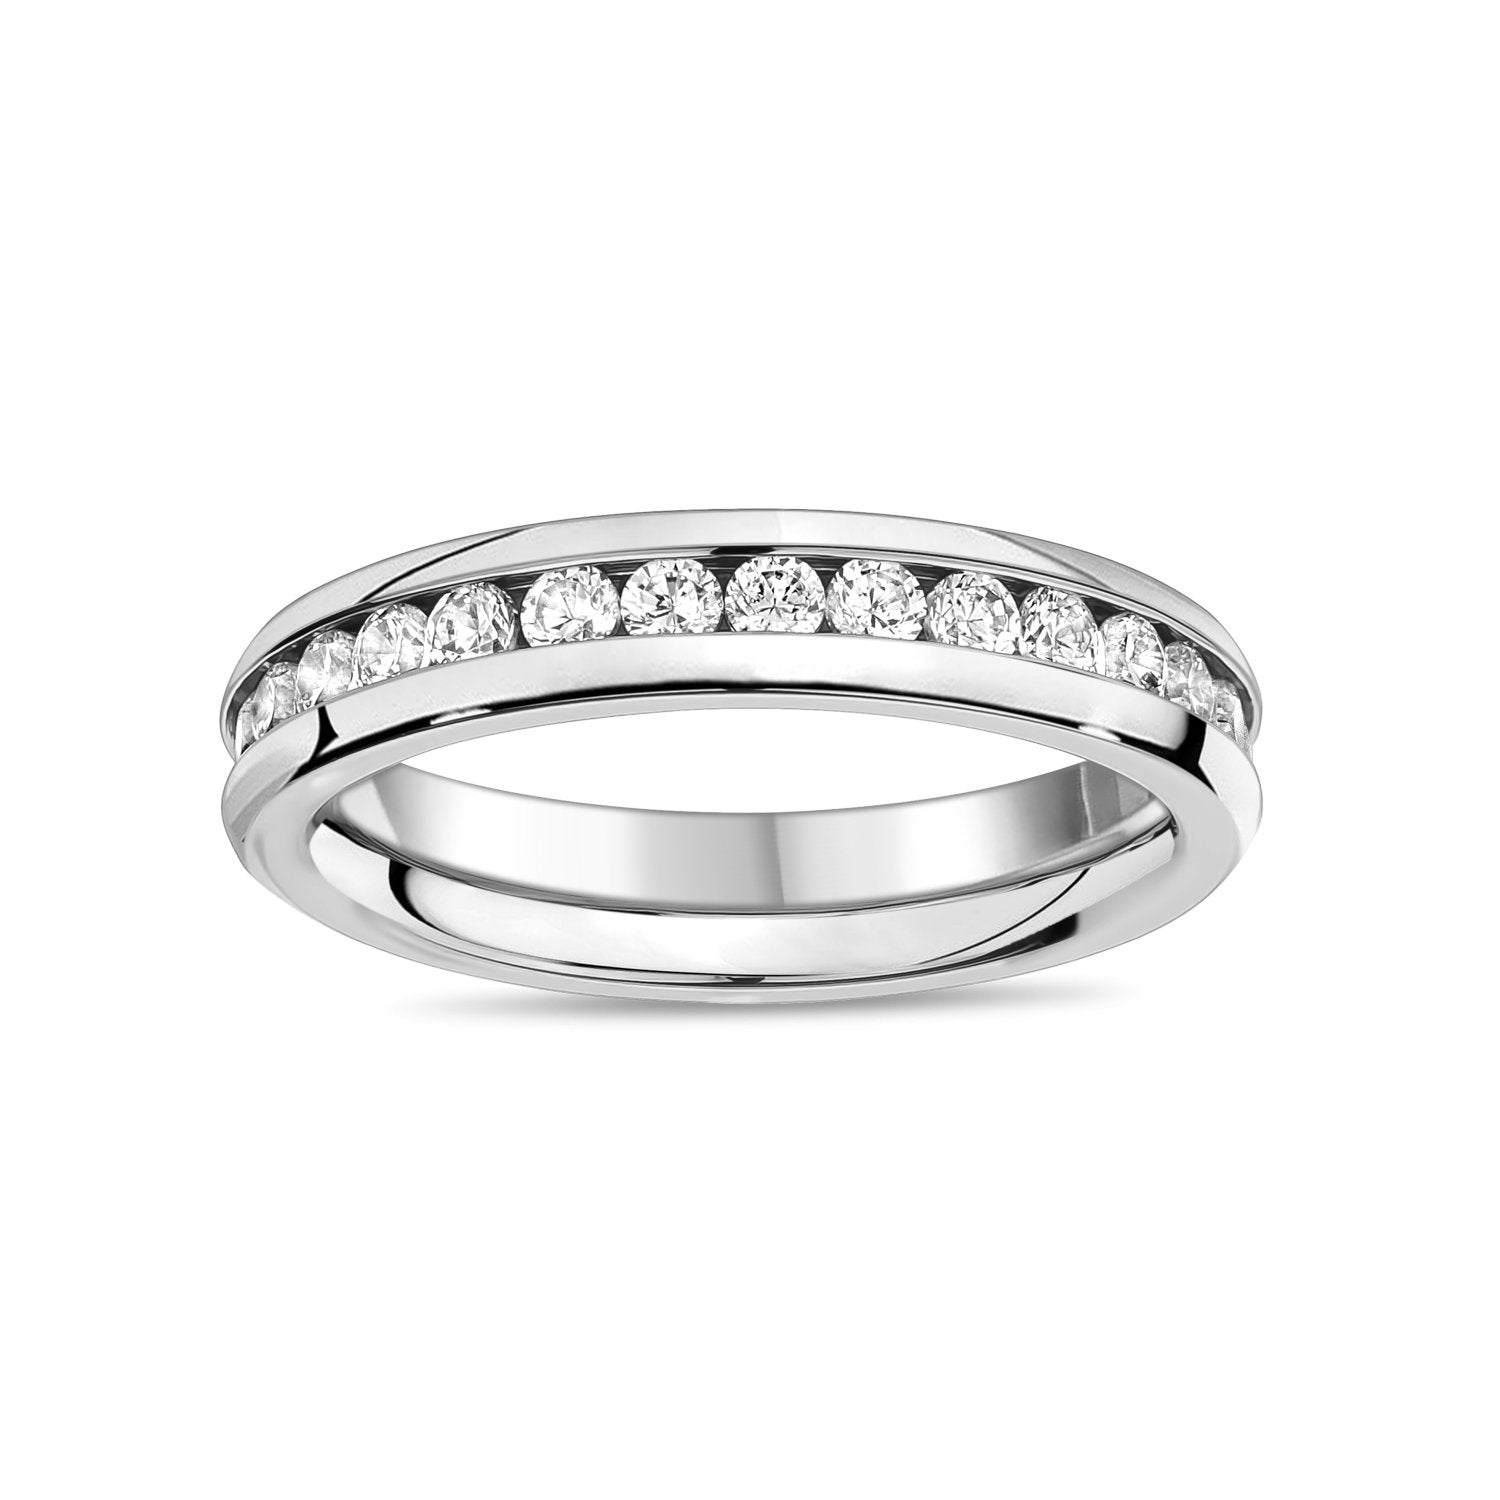 Women Ring - Stainless Steel Channel Setting Eternity Ring